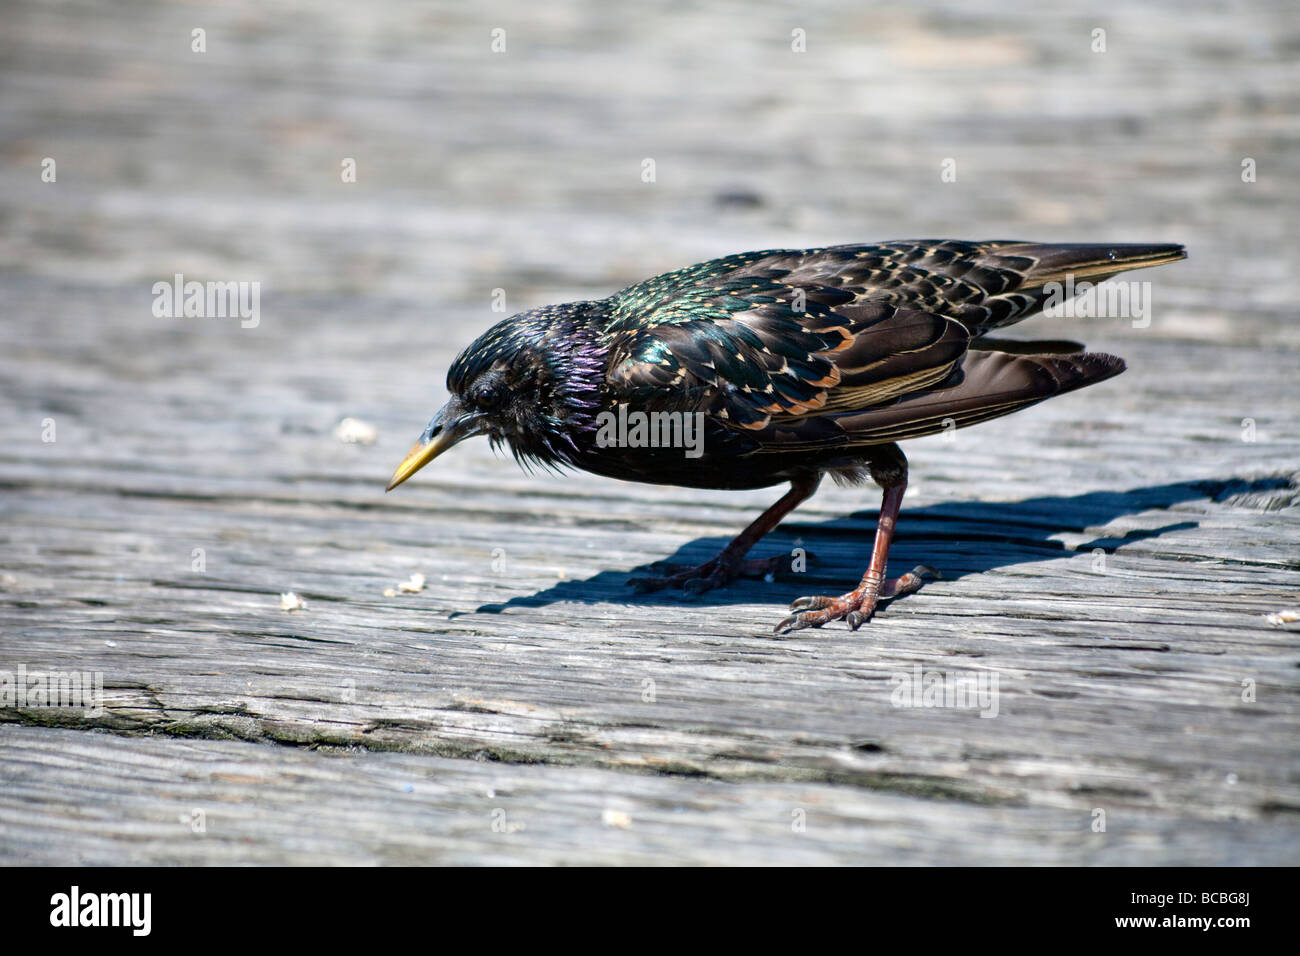 starling scavenging for food on Granville Island pier Vancouver, BC, Canada - Stock Image